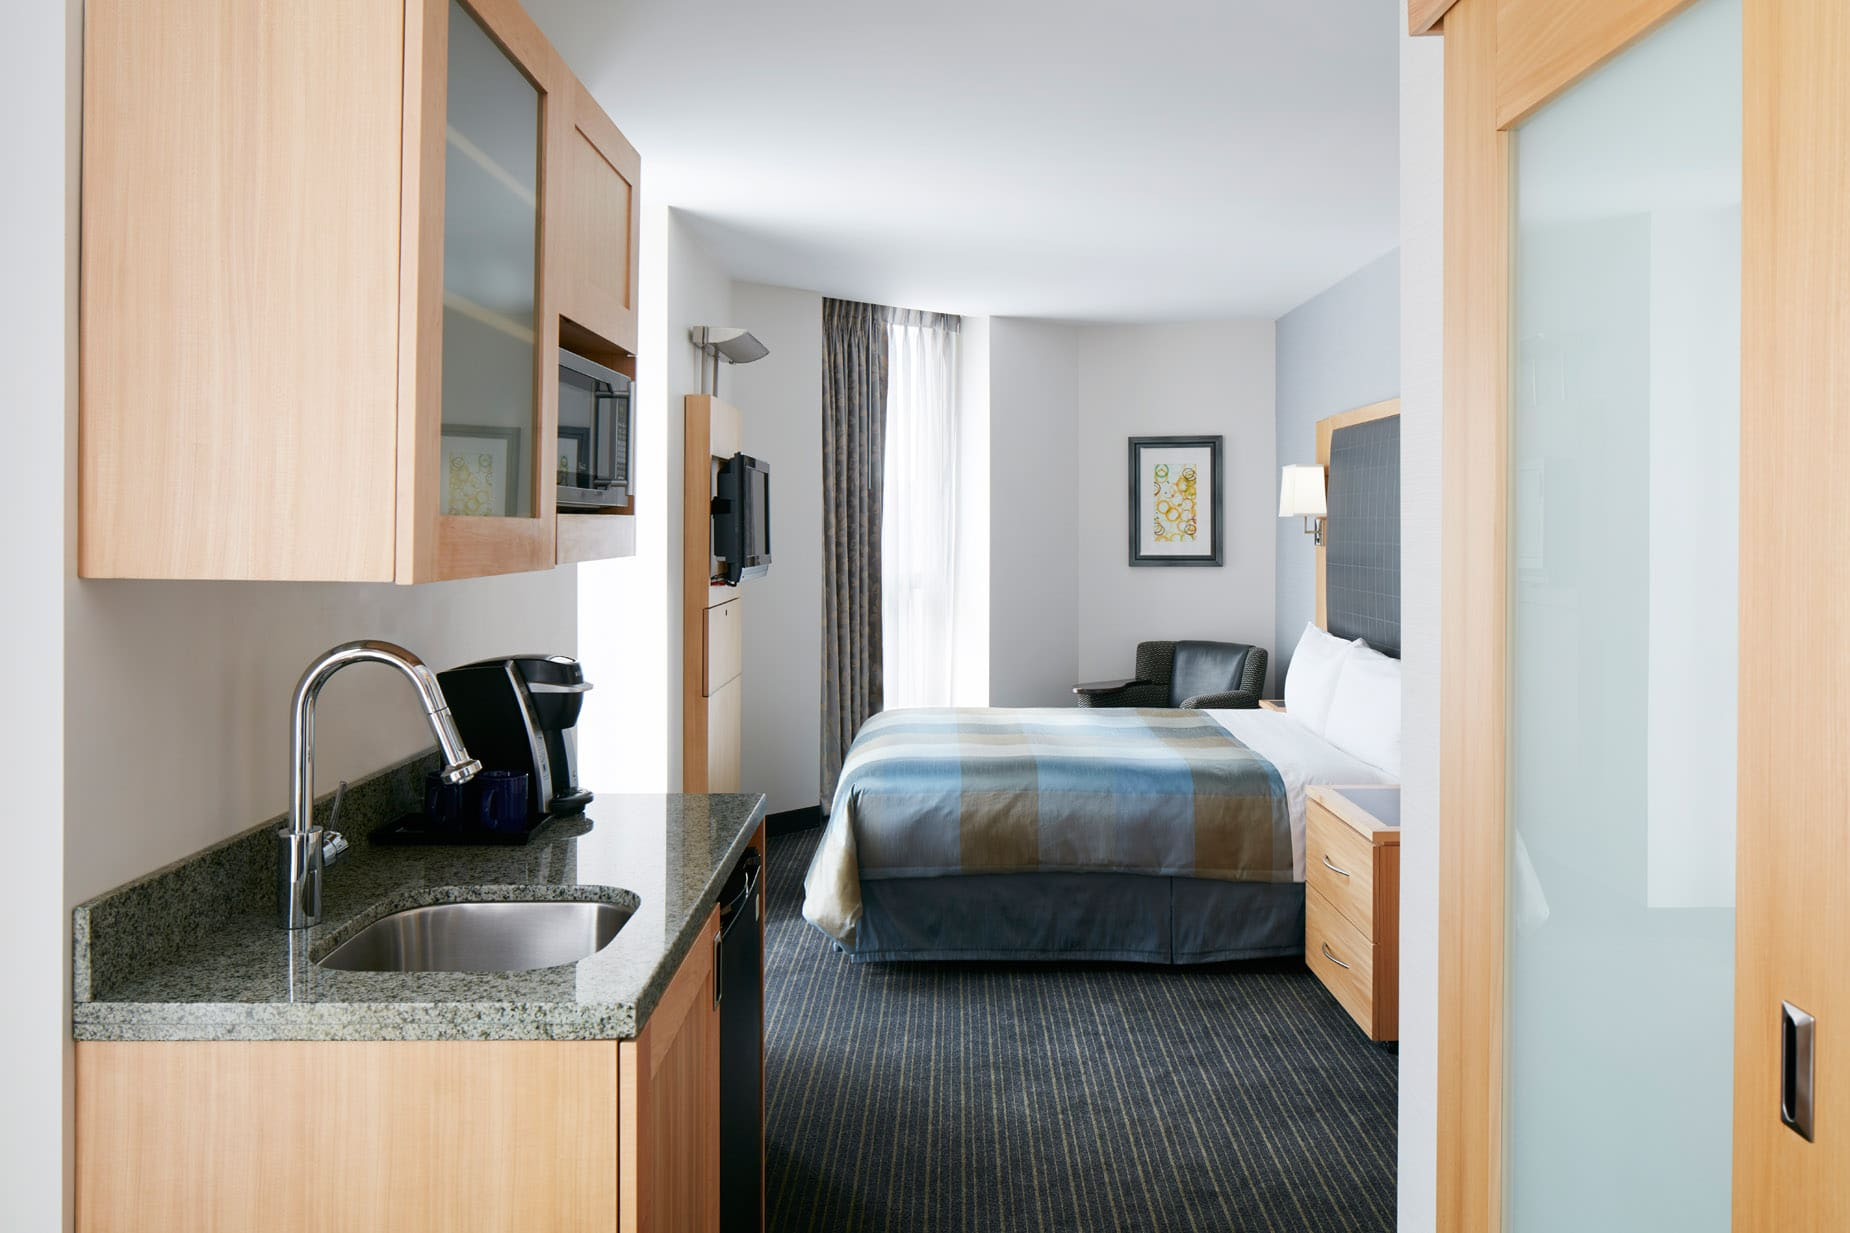 hotel with kitchen in room sharp knives club quarters world trade center lower manhattan